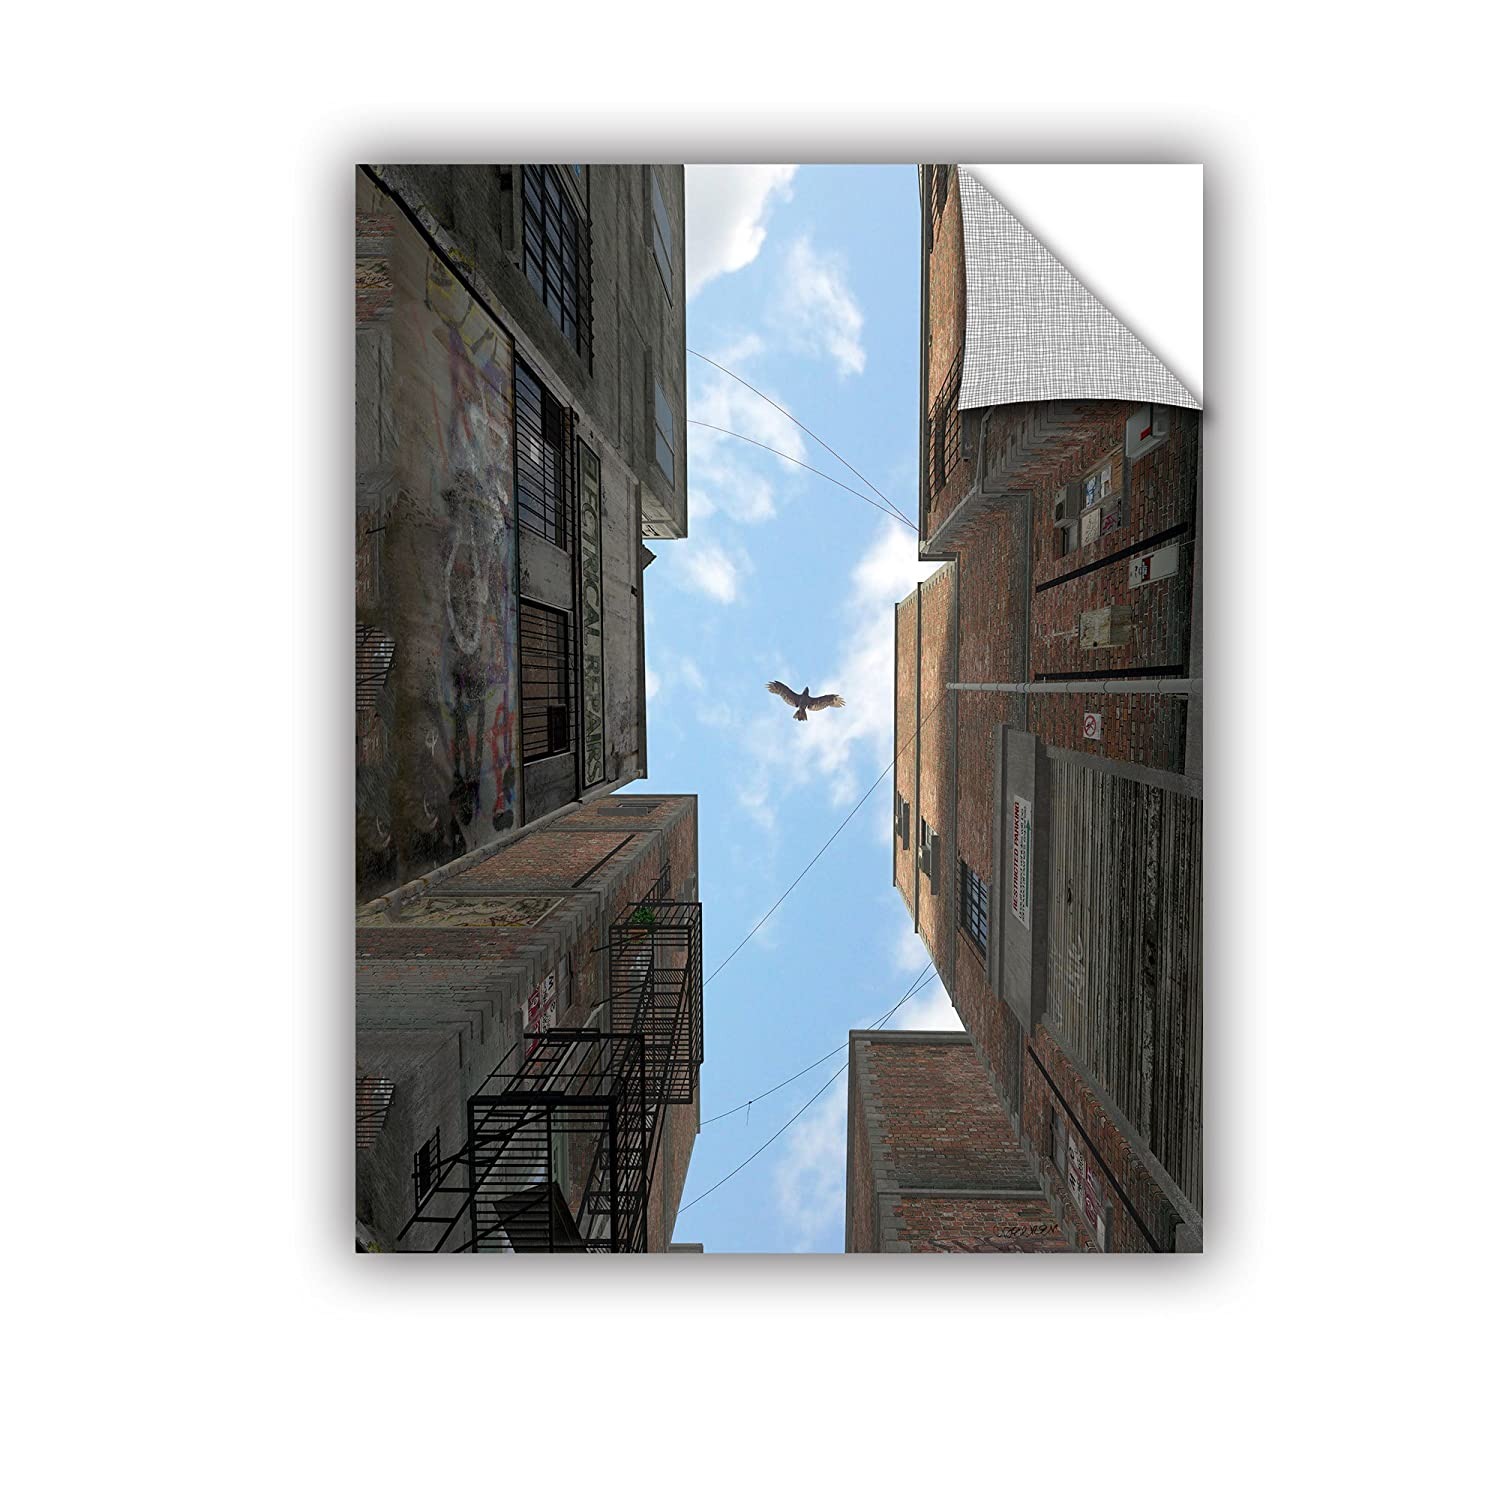 ArtWall 0dec001a1824p Cynthia Deckers Afternoon Art Appeelz Removable Wall Art Graphic 18-Inch x 24-Inch